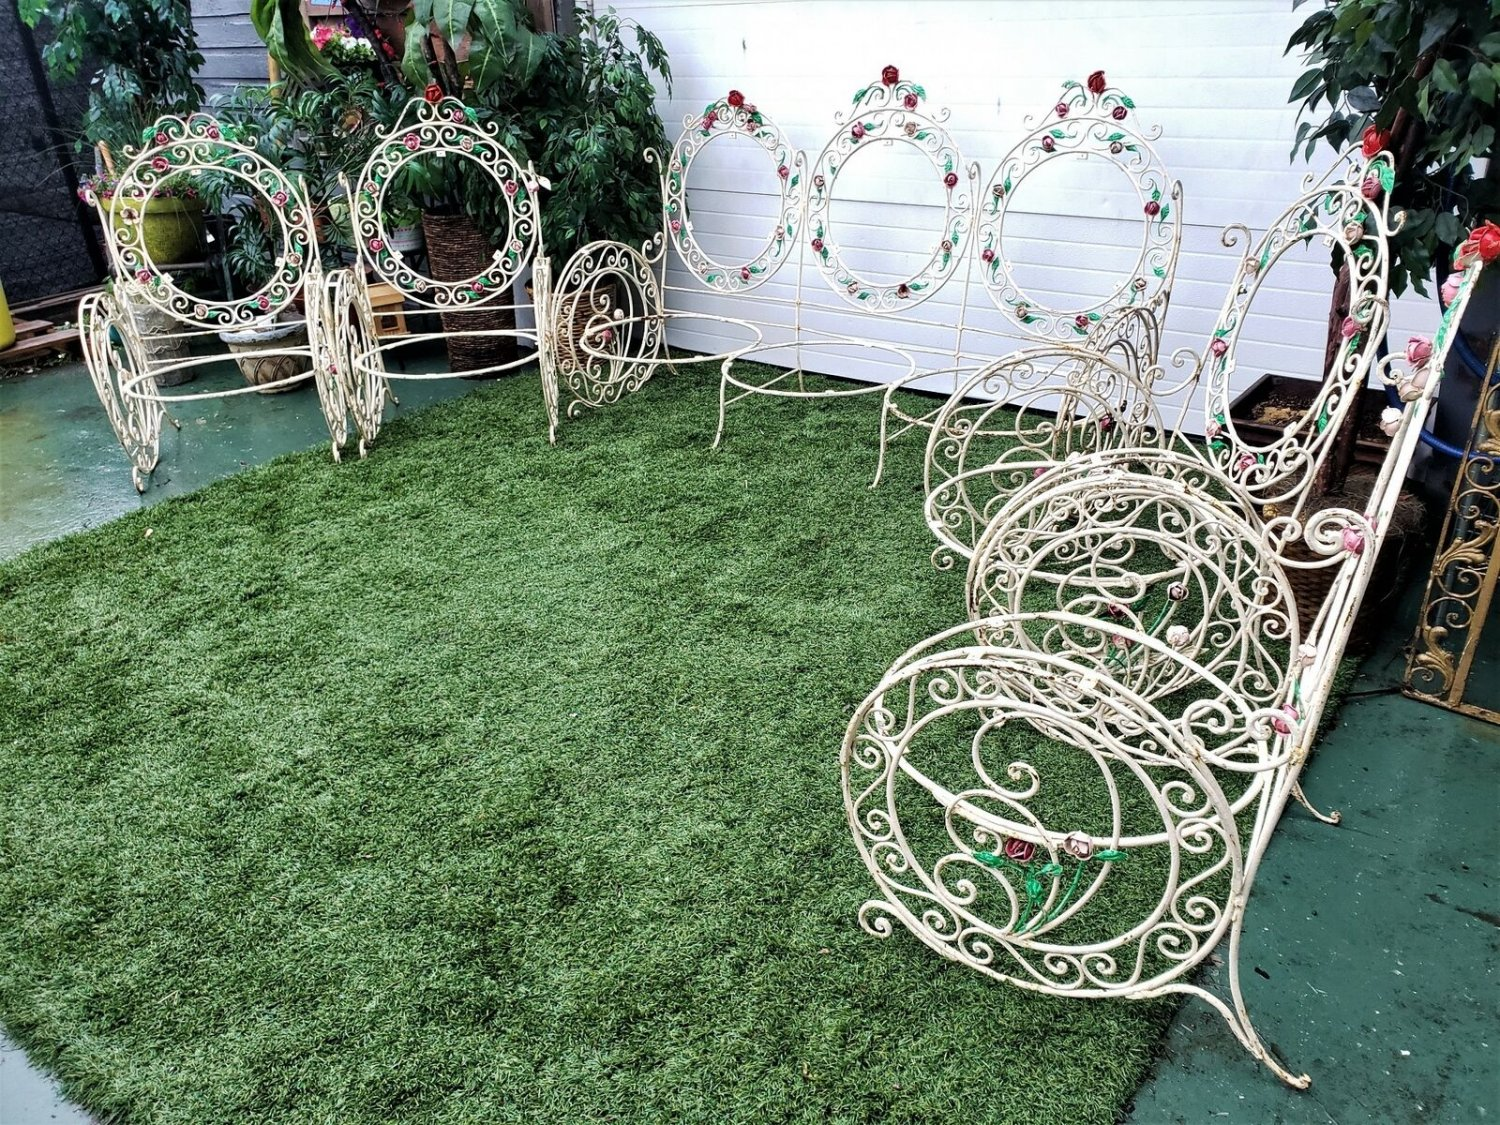 Antique French Scrolled Wrought Iron Garden Sofa & Four Chair Set